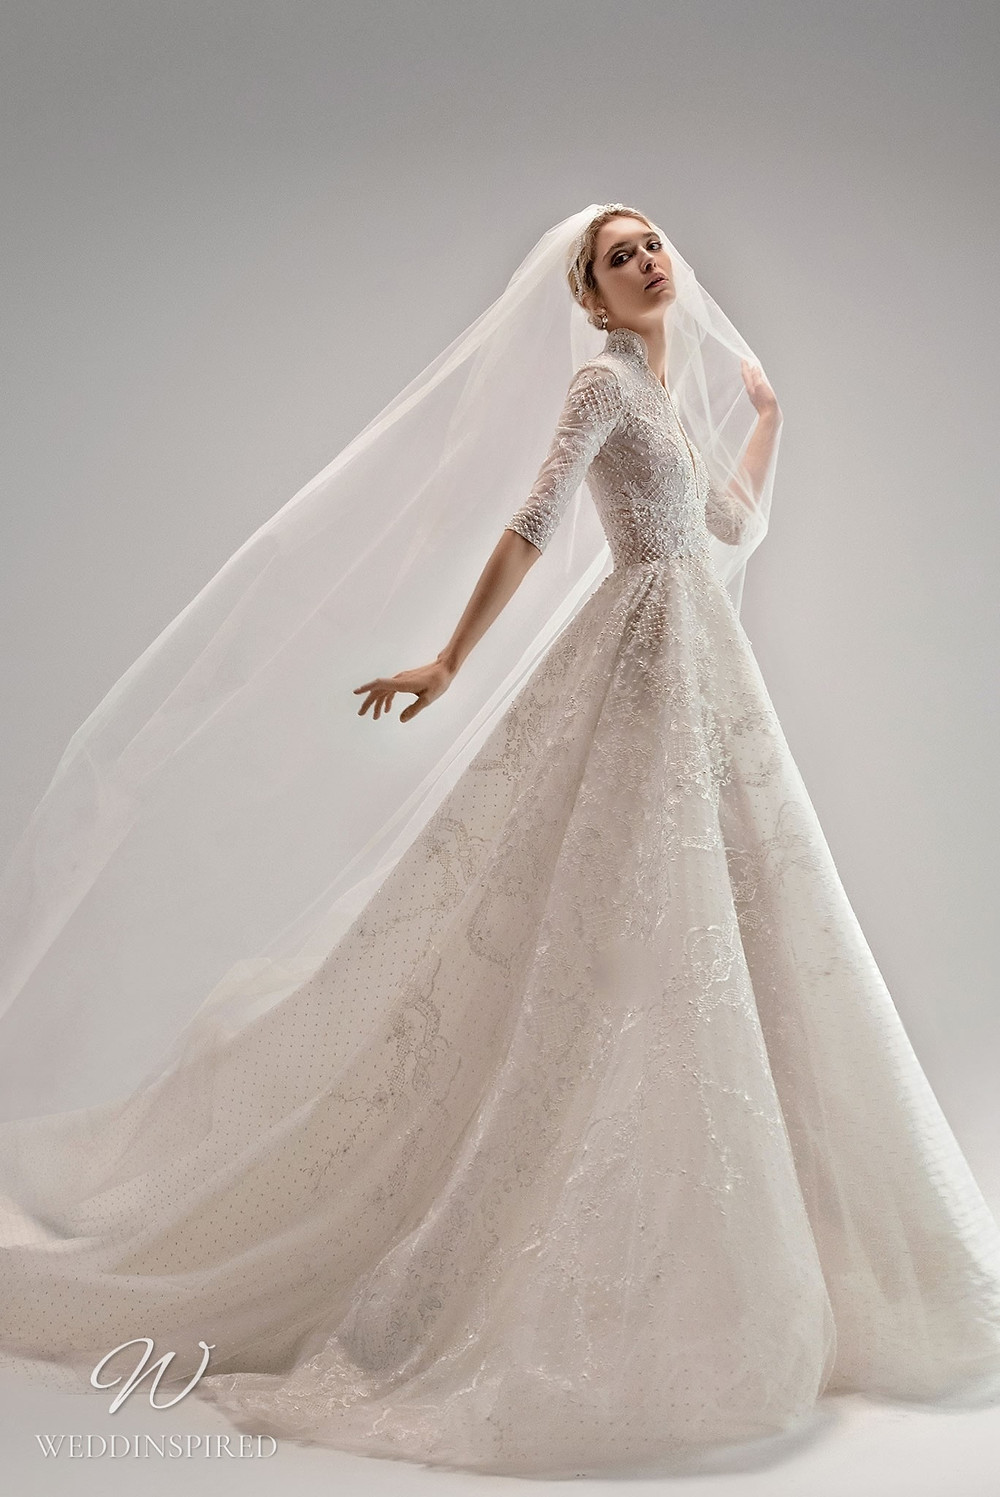 An Ersa Atelier 2021 tulle ball gown wedding dress with half sleeves, a high neck, beading and embroider